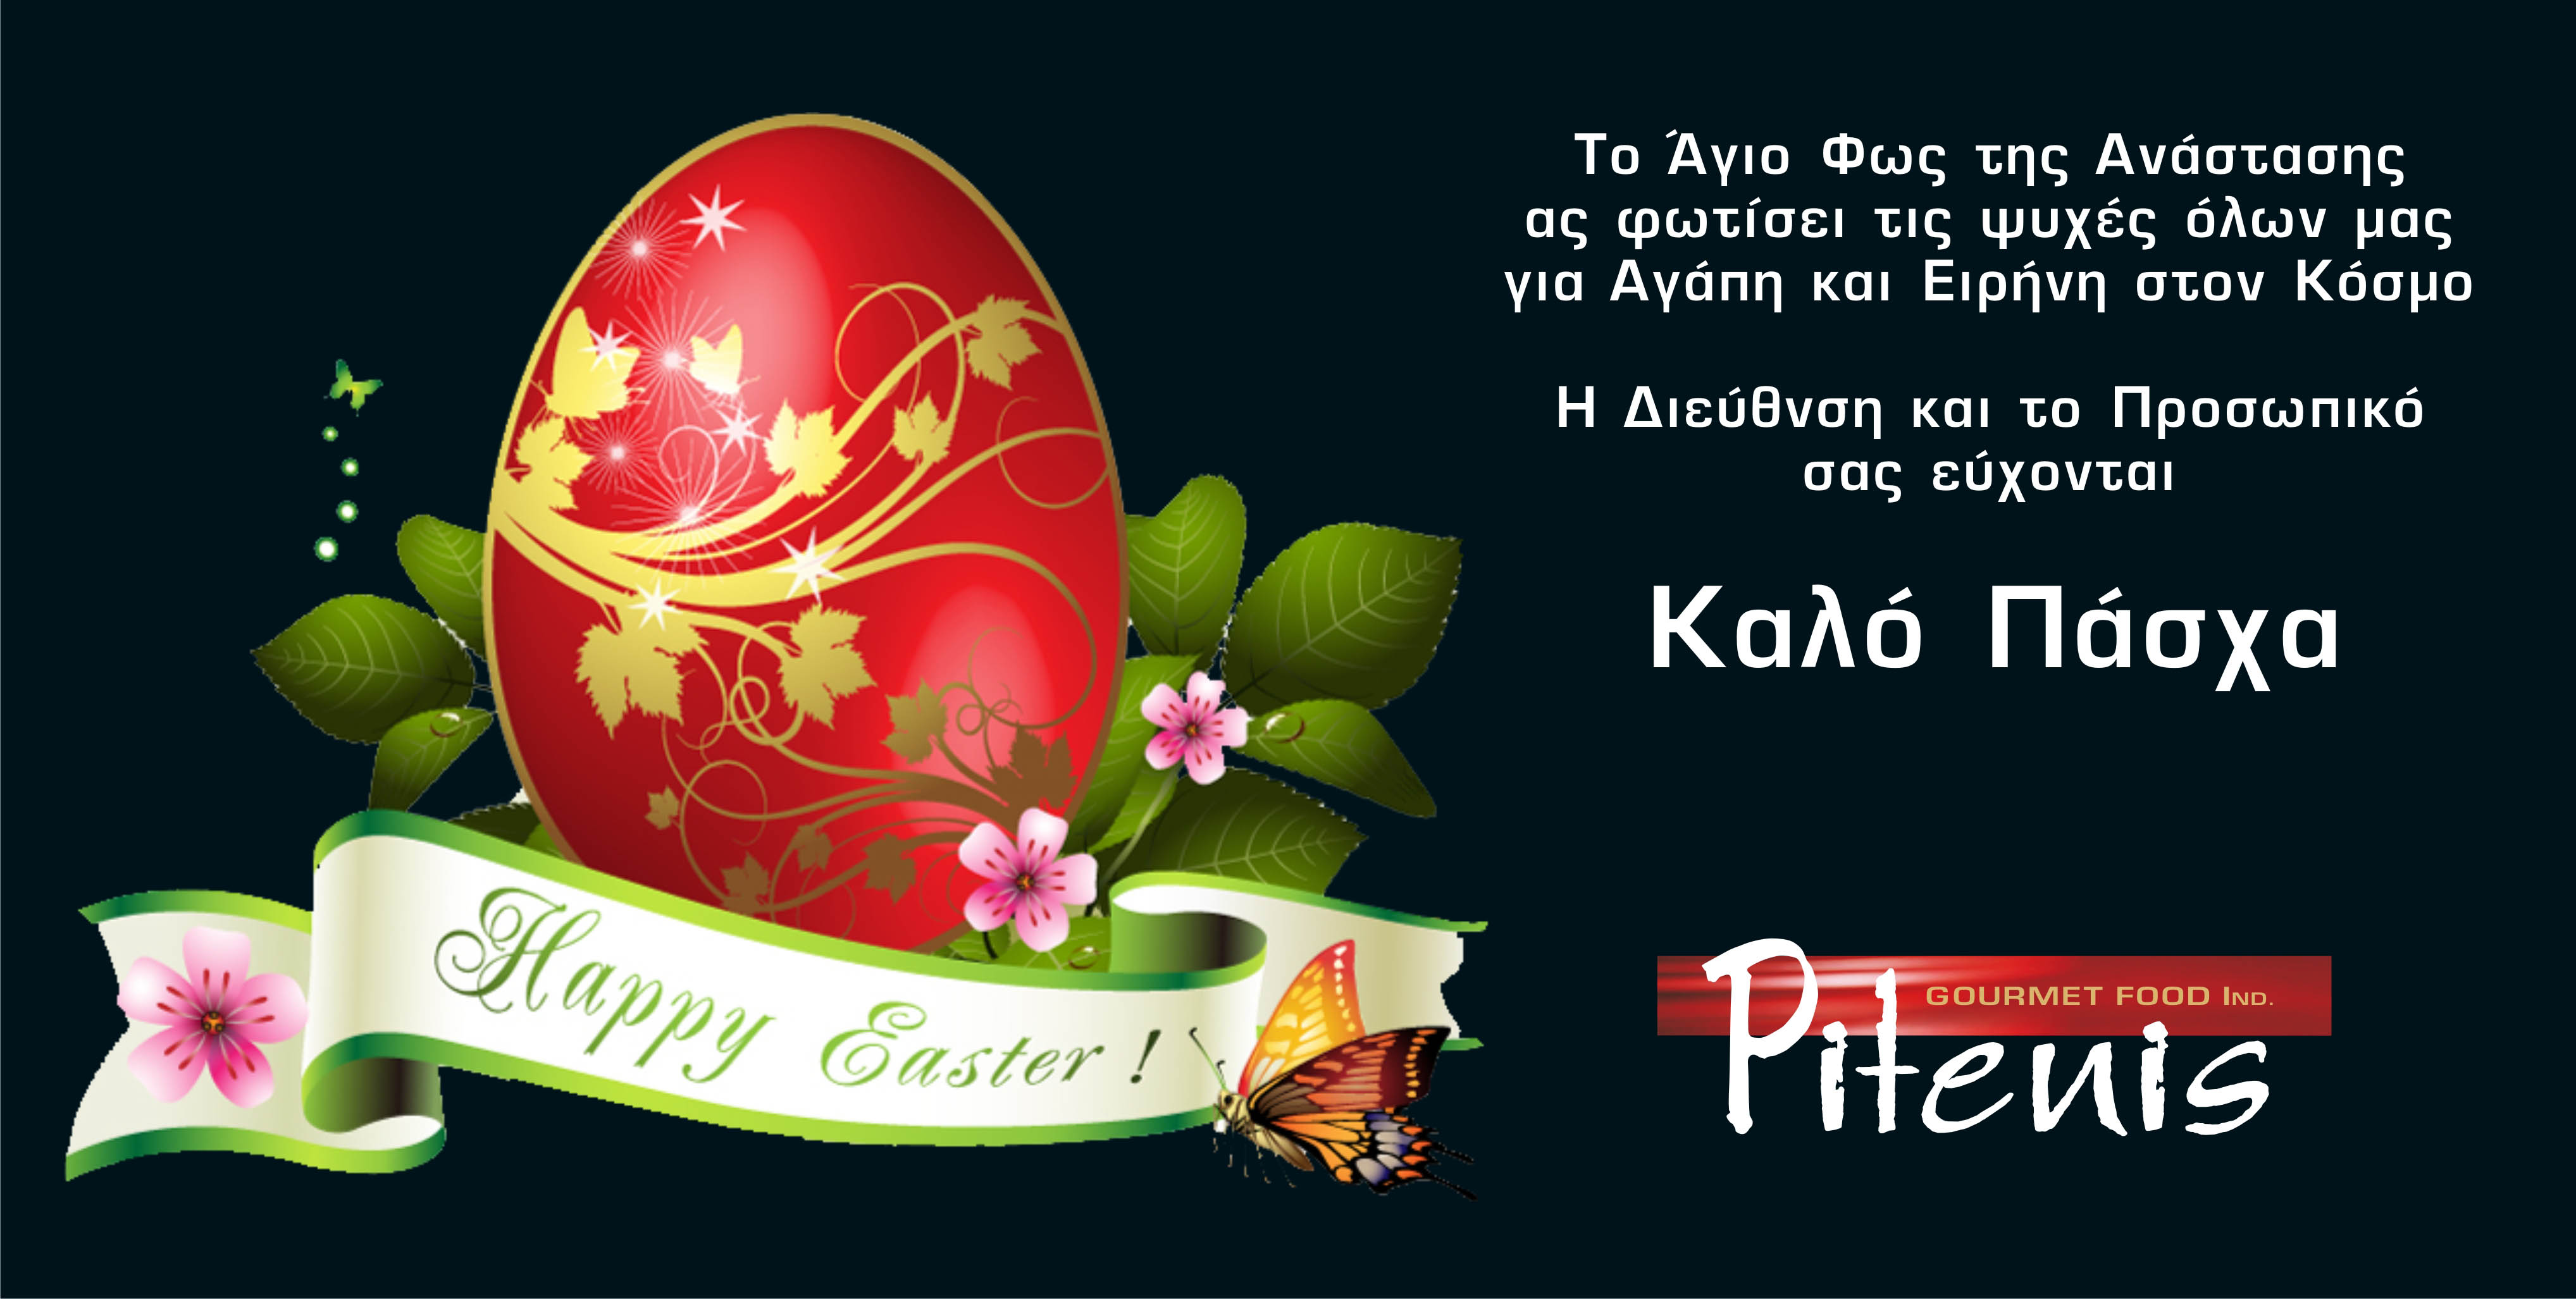 Easter Greetings From Our Company Apitenis Bros Sa Gourmet